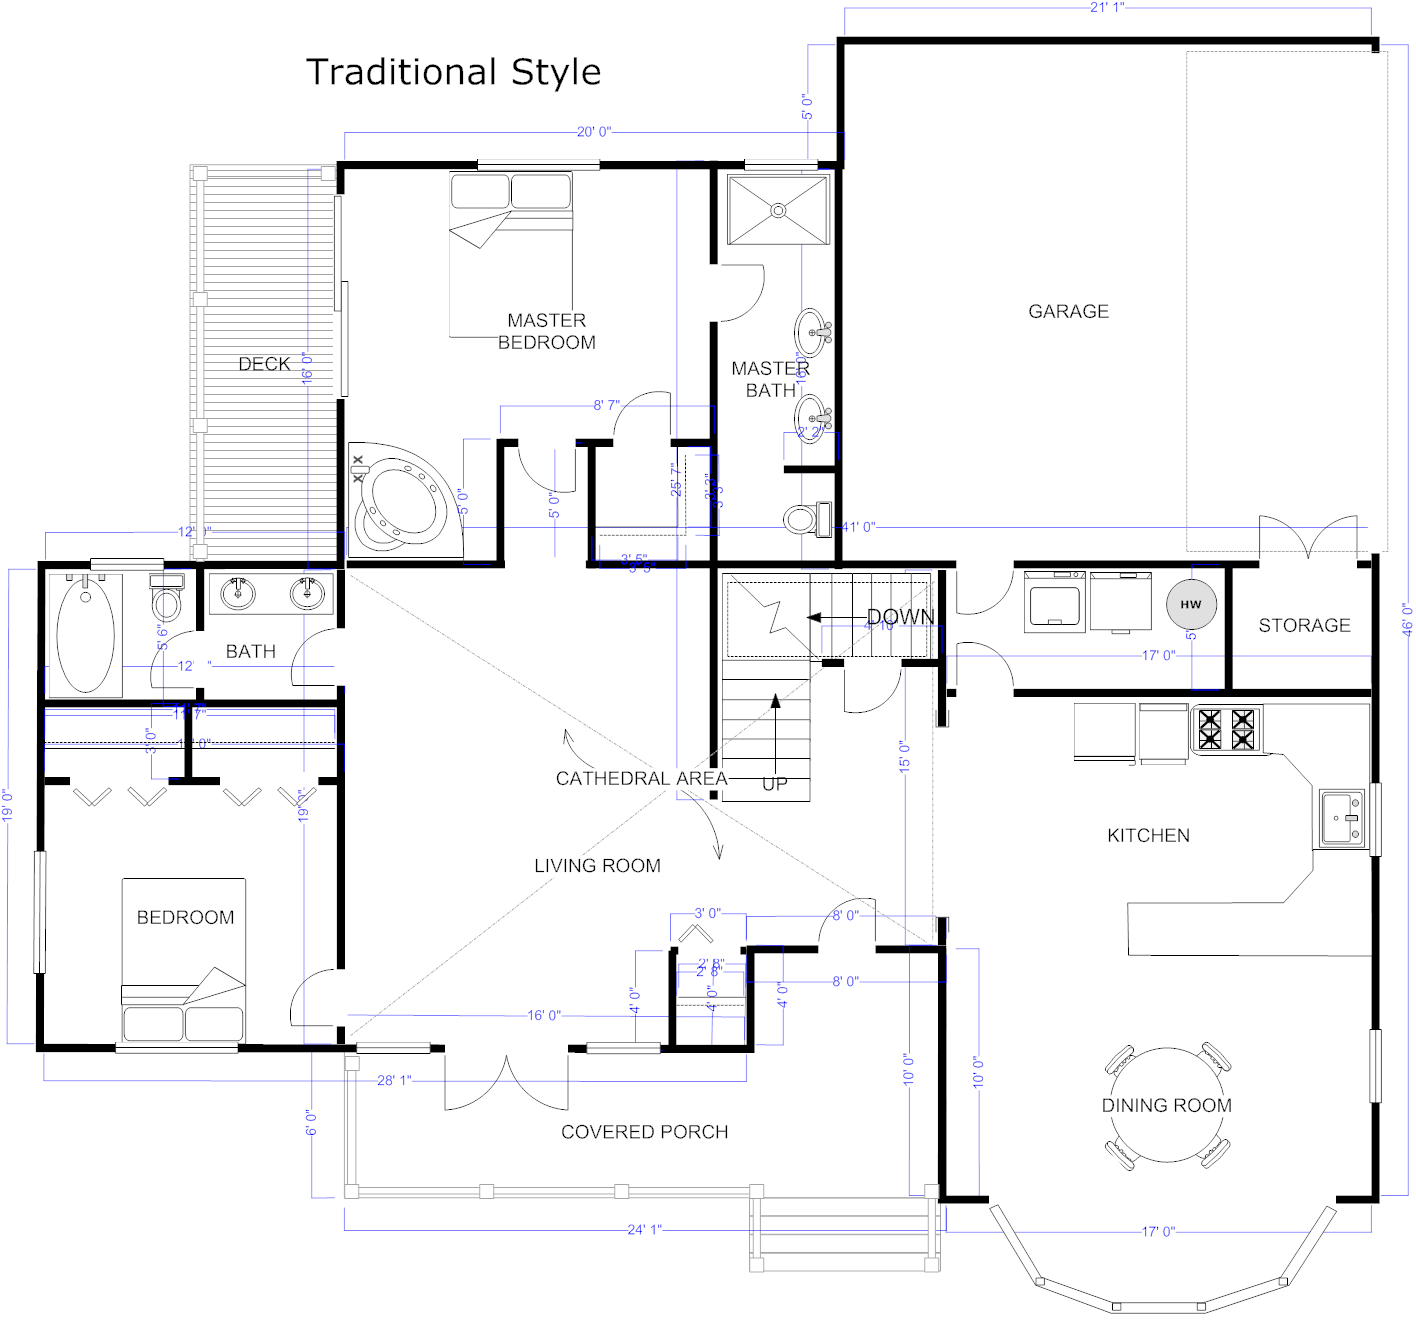 House Design Software - Download Free to Design Home Plans